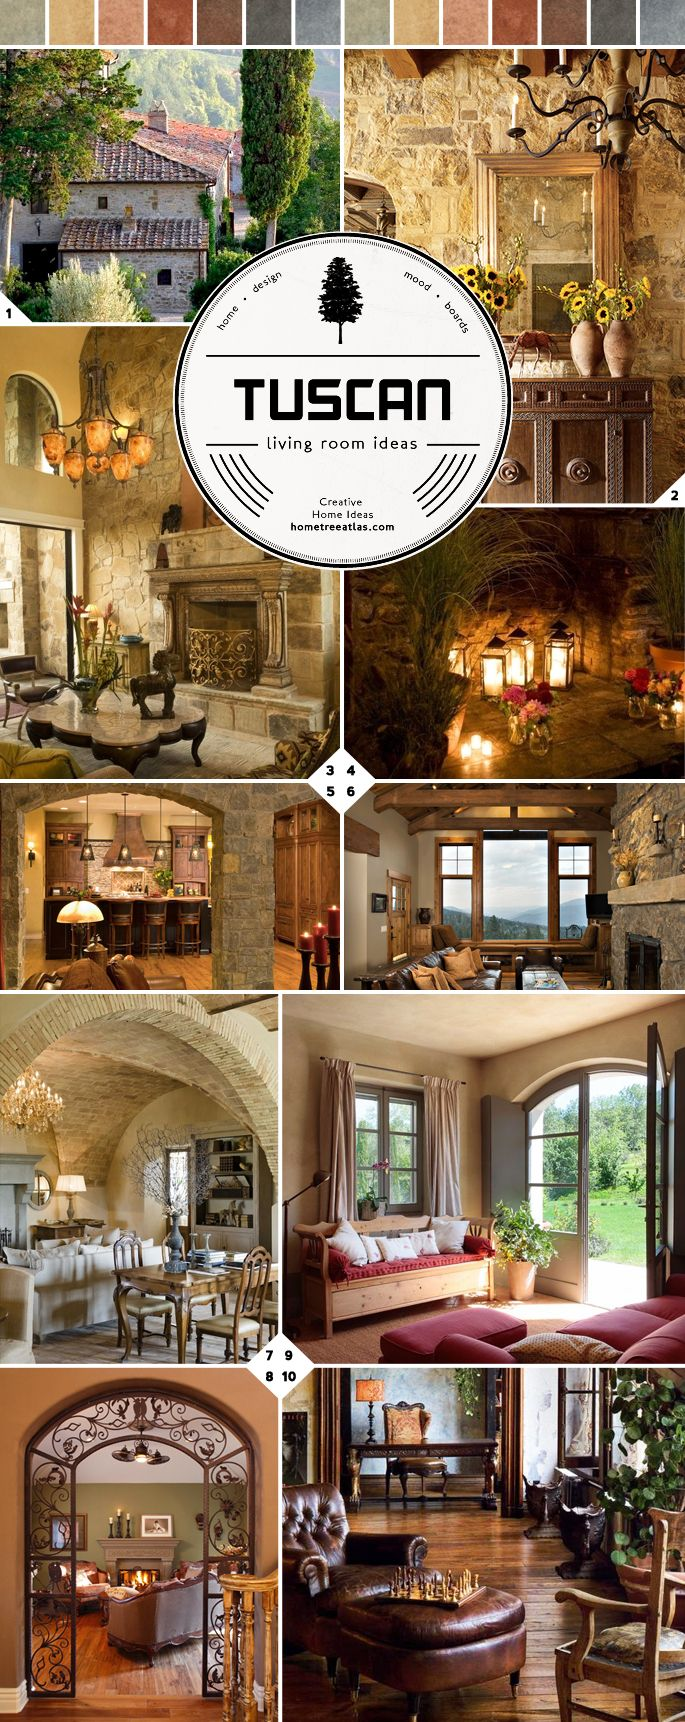 Italian Living Room Design: From Italy: Tuscan Living Room Ideas